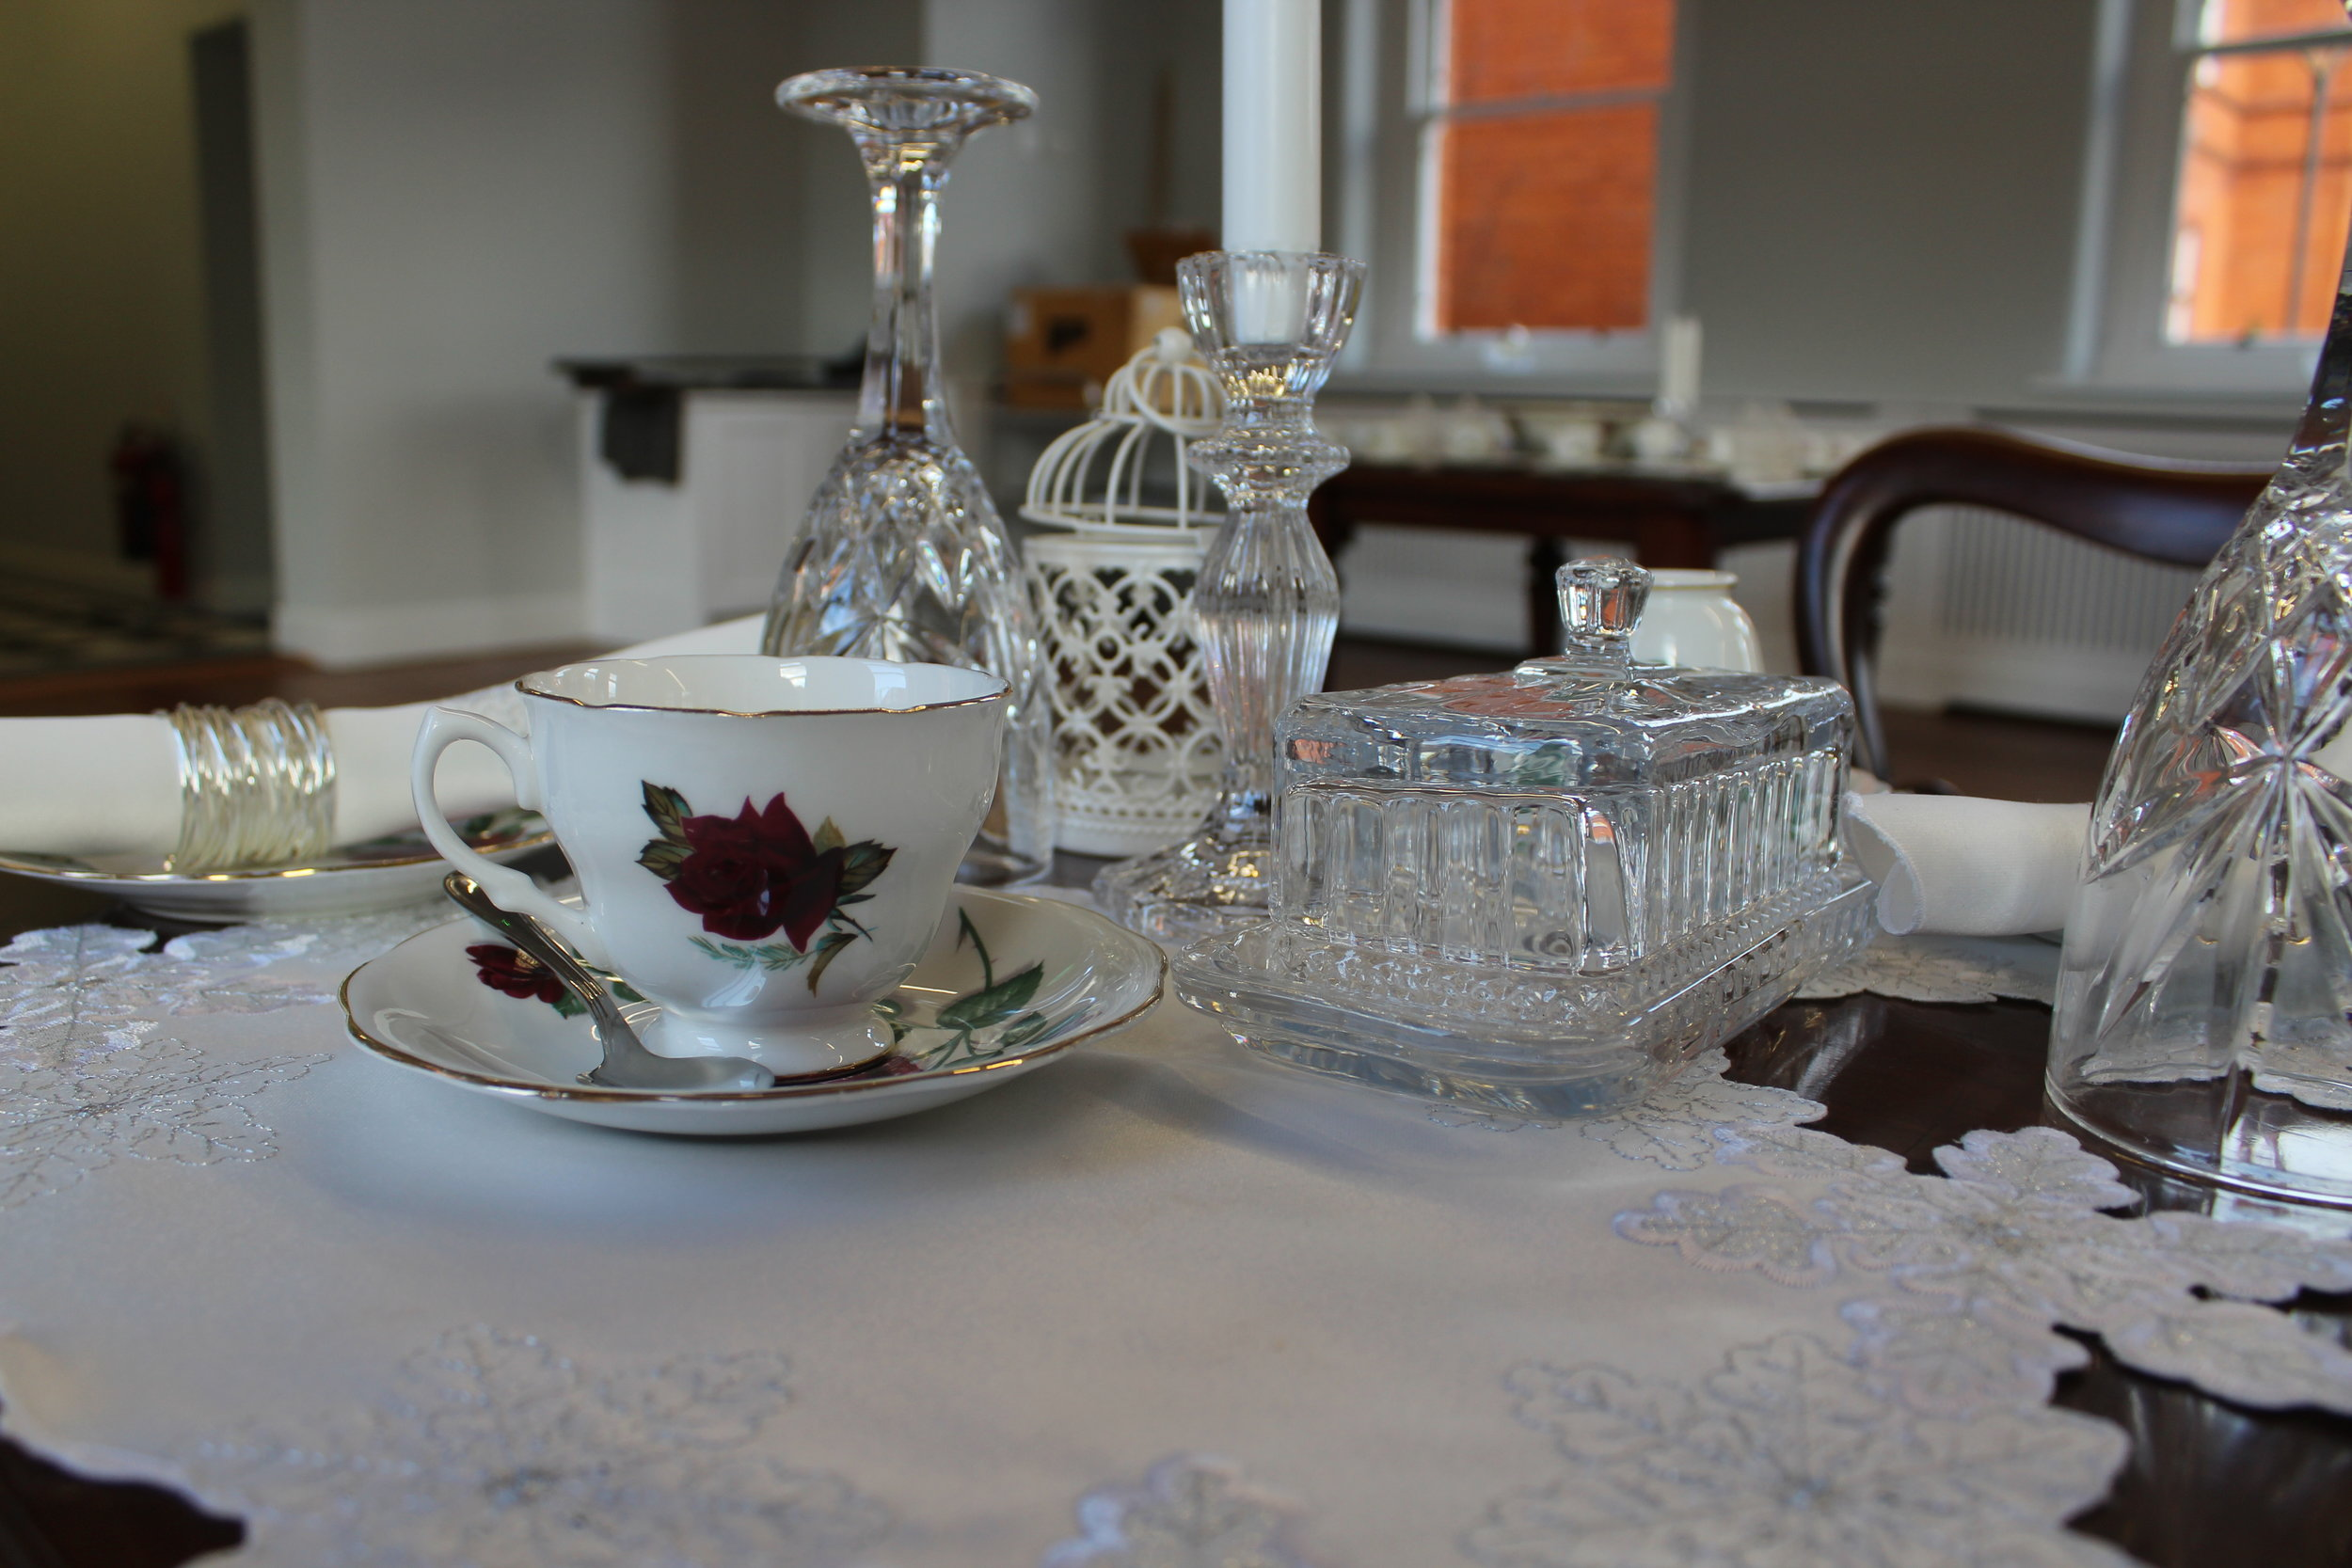 Victorian Tea Room - This is a multifunctional room that can be used for meetings and events. It can be arranged with specific beverage points and has capacity to support a range of catering needs.